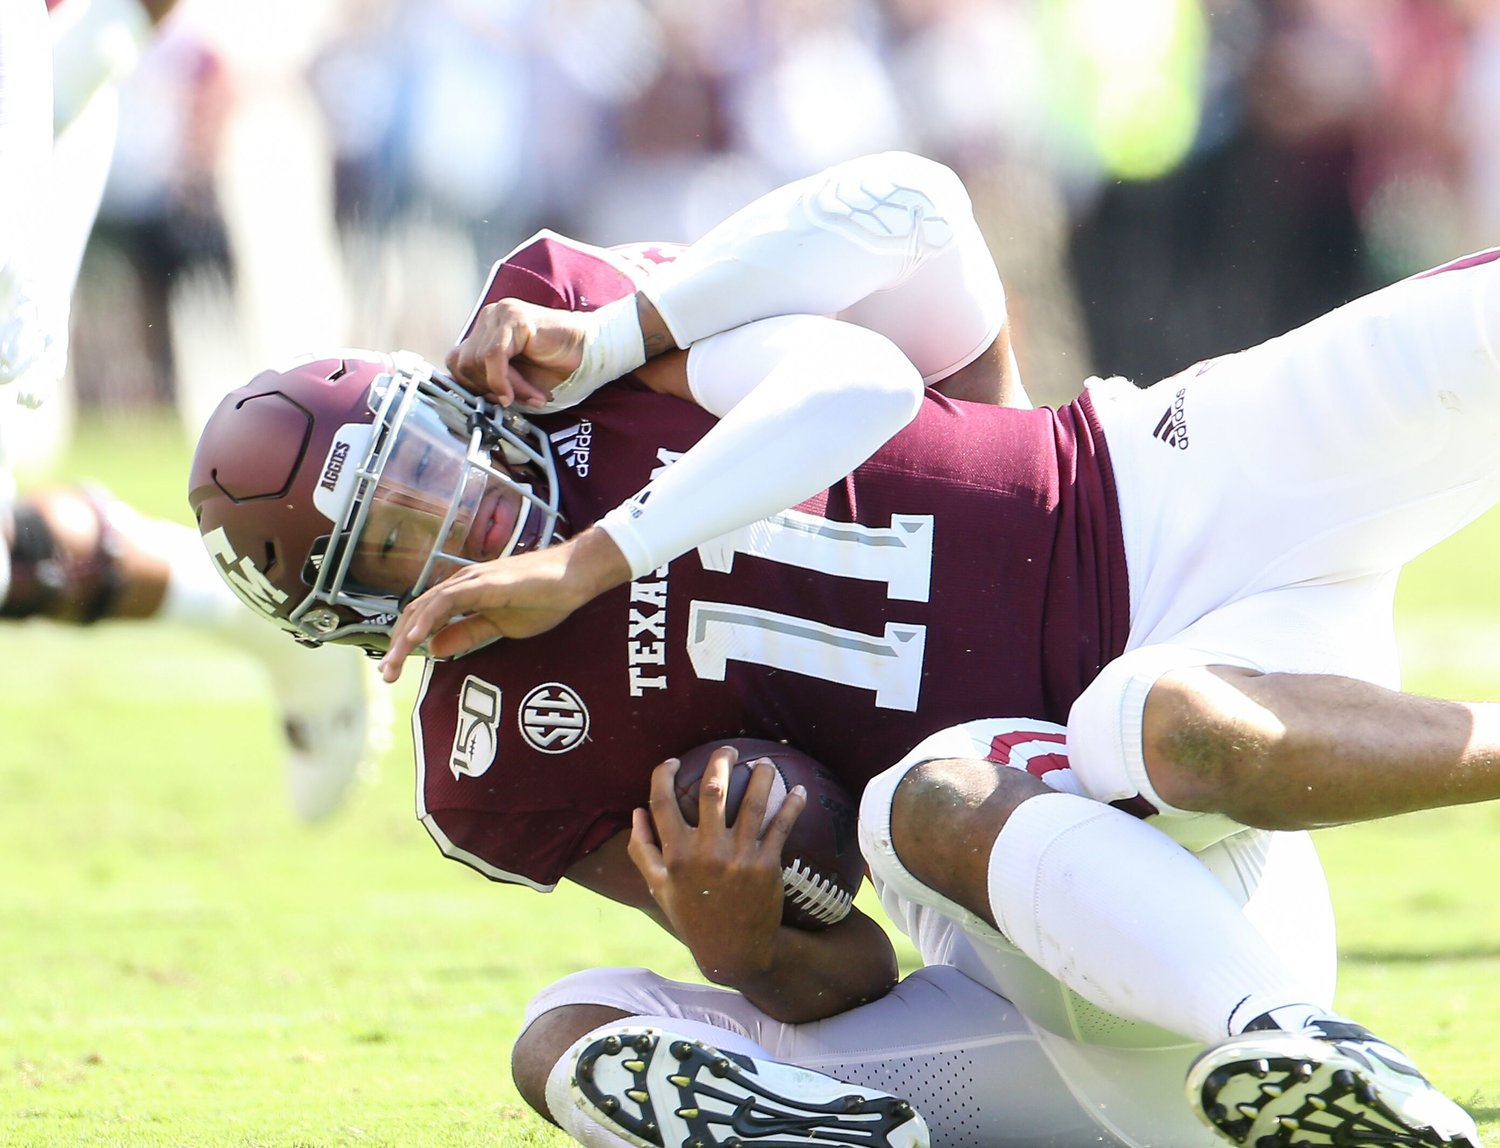 Texas A&M quarterback Kellen Mond is dragged to the turf by an Alabama defender during Saturday's home loss to the Crimson Tide.